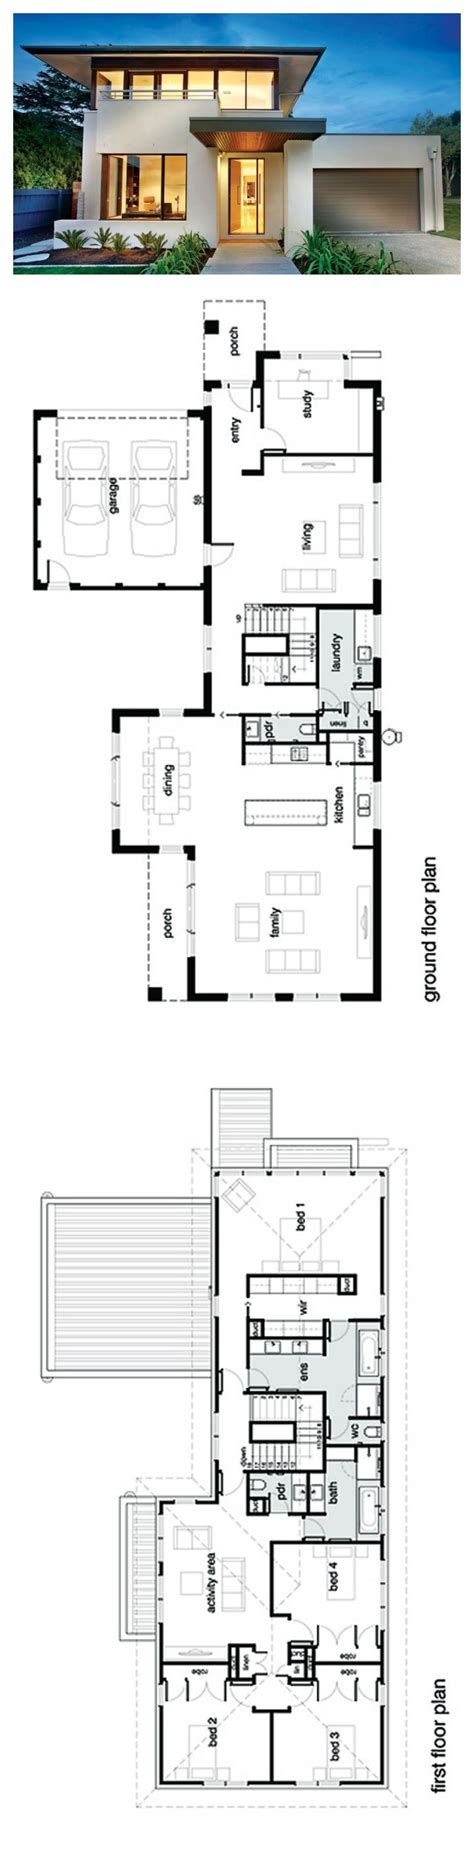 modern small house floor plans best 25 modern house plans ideas on pinterest modern